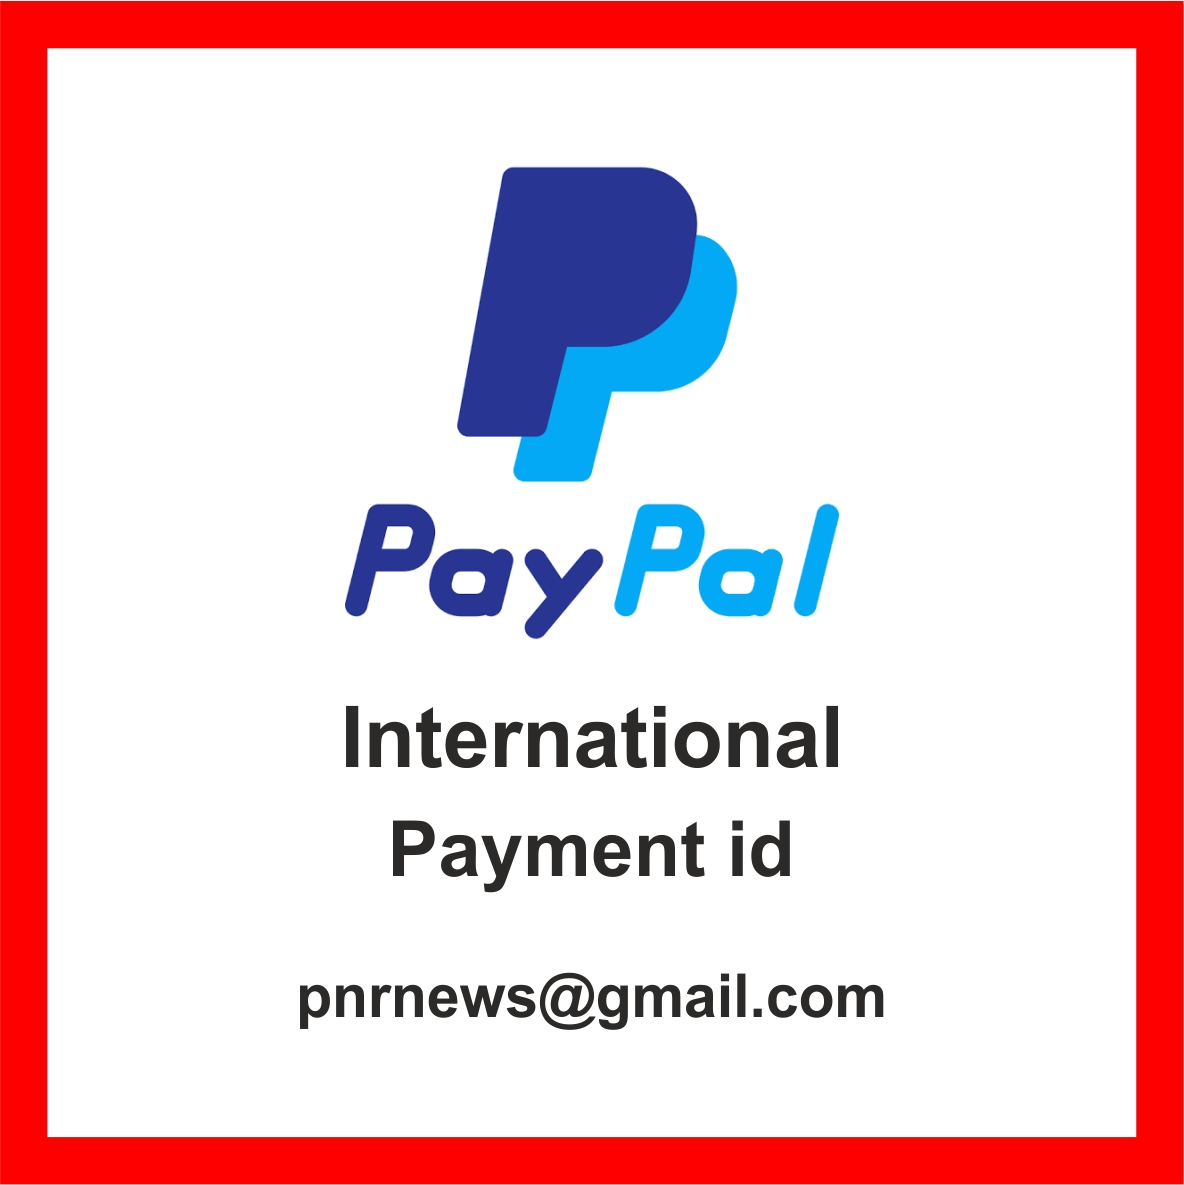 for outside India costumers online payment for your advertisement